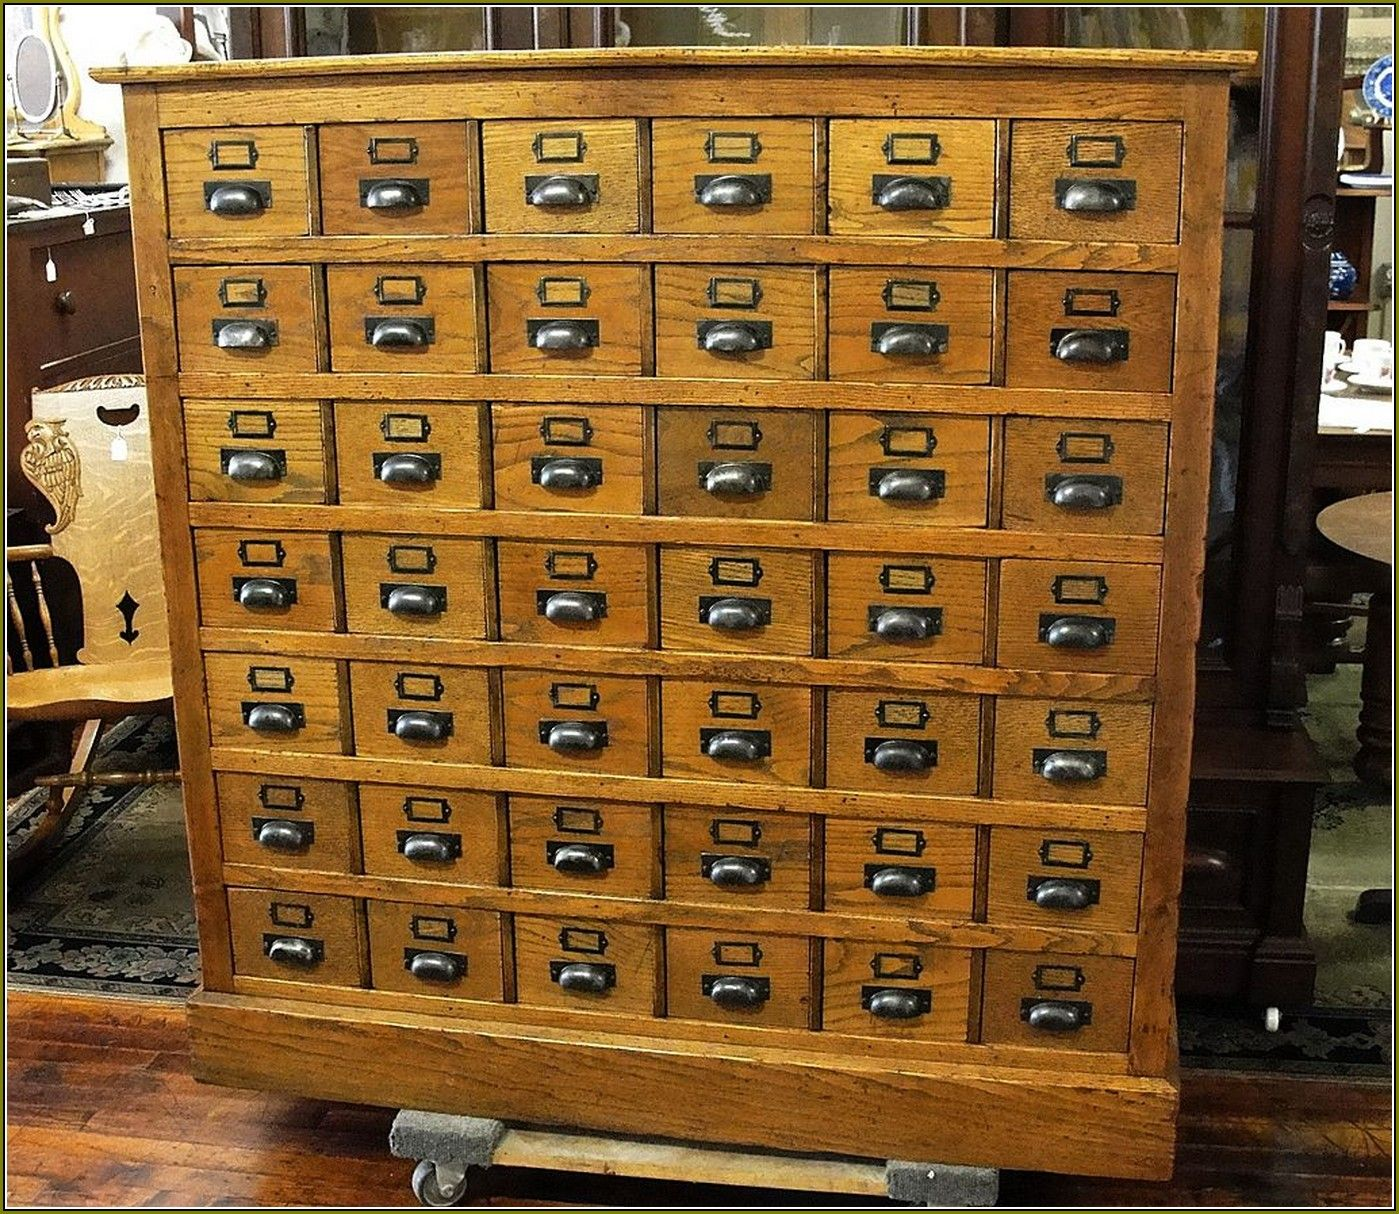 Antique Library Card Catalog Cabinet | Home Design Ideas - Antique Library Card Catalog Cabinet Home Design Ideas